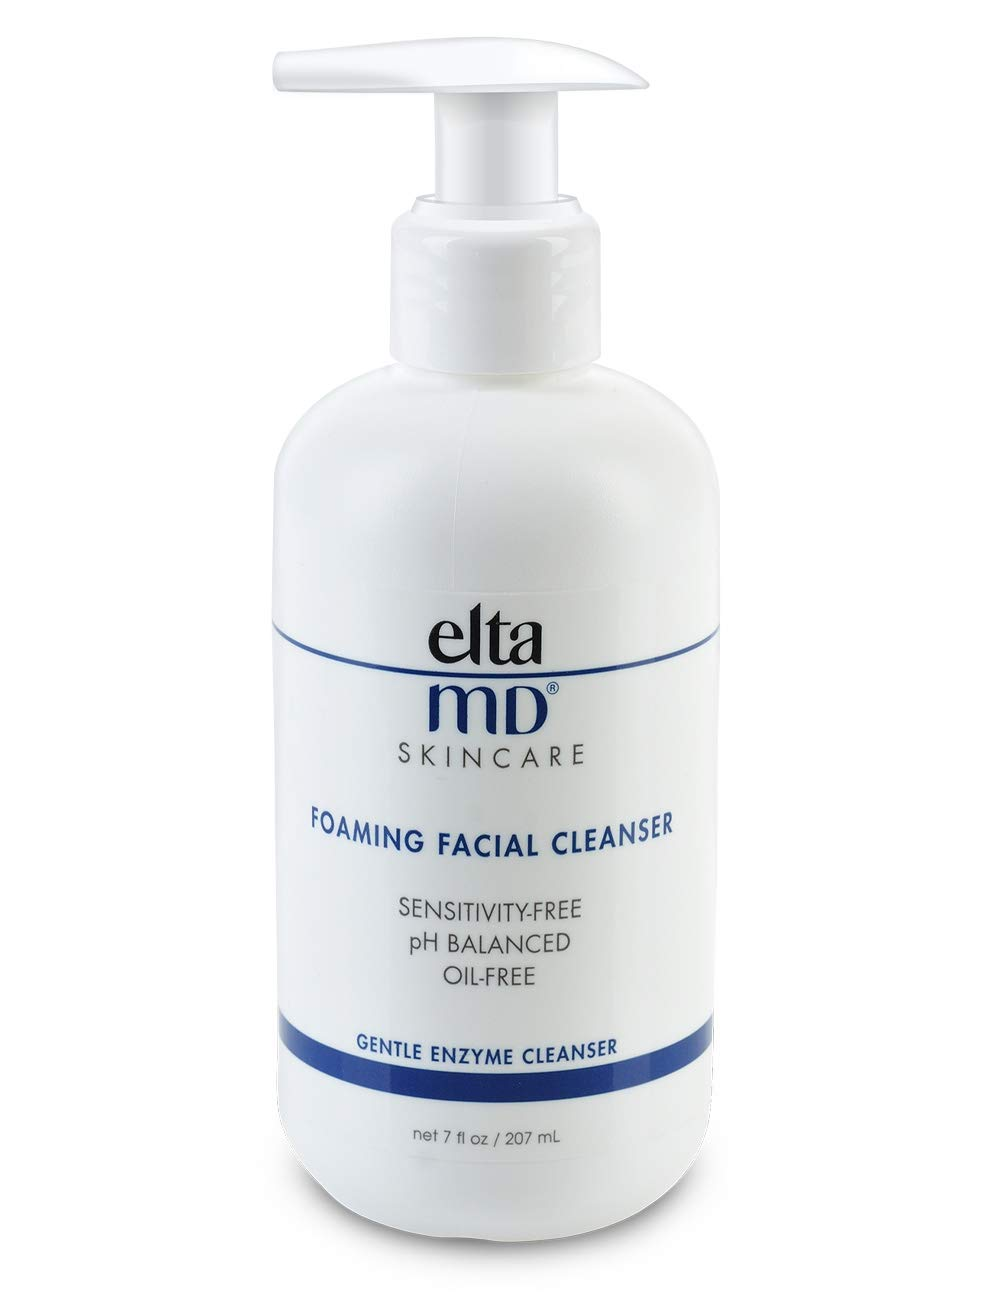 EltaMD Foaming Facial Cleanser, Gentle, Oil-free, Paraben-free, Dermatologist-Recommended Enzyme and Amino Acid Face Wash 7.0 oz by ELTA MD